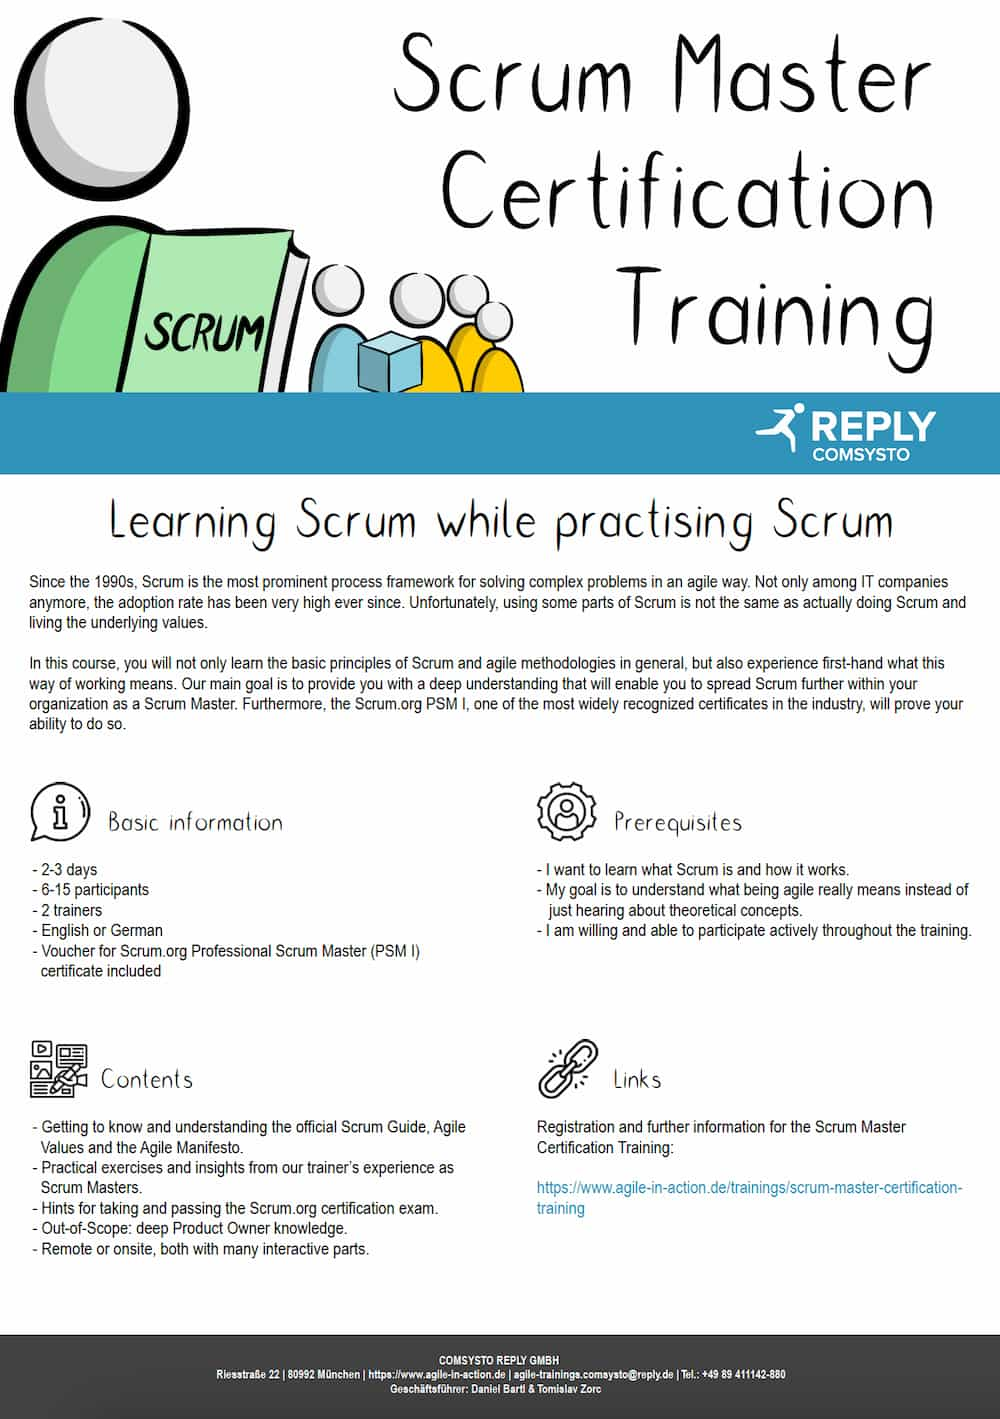 Short overview of the Scrum Master Certification training for PSM1 (Professional Scrum Master 1)